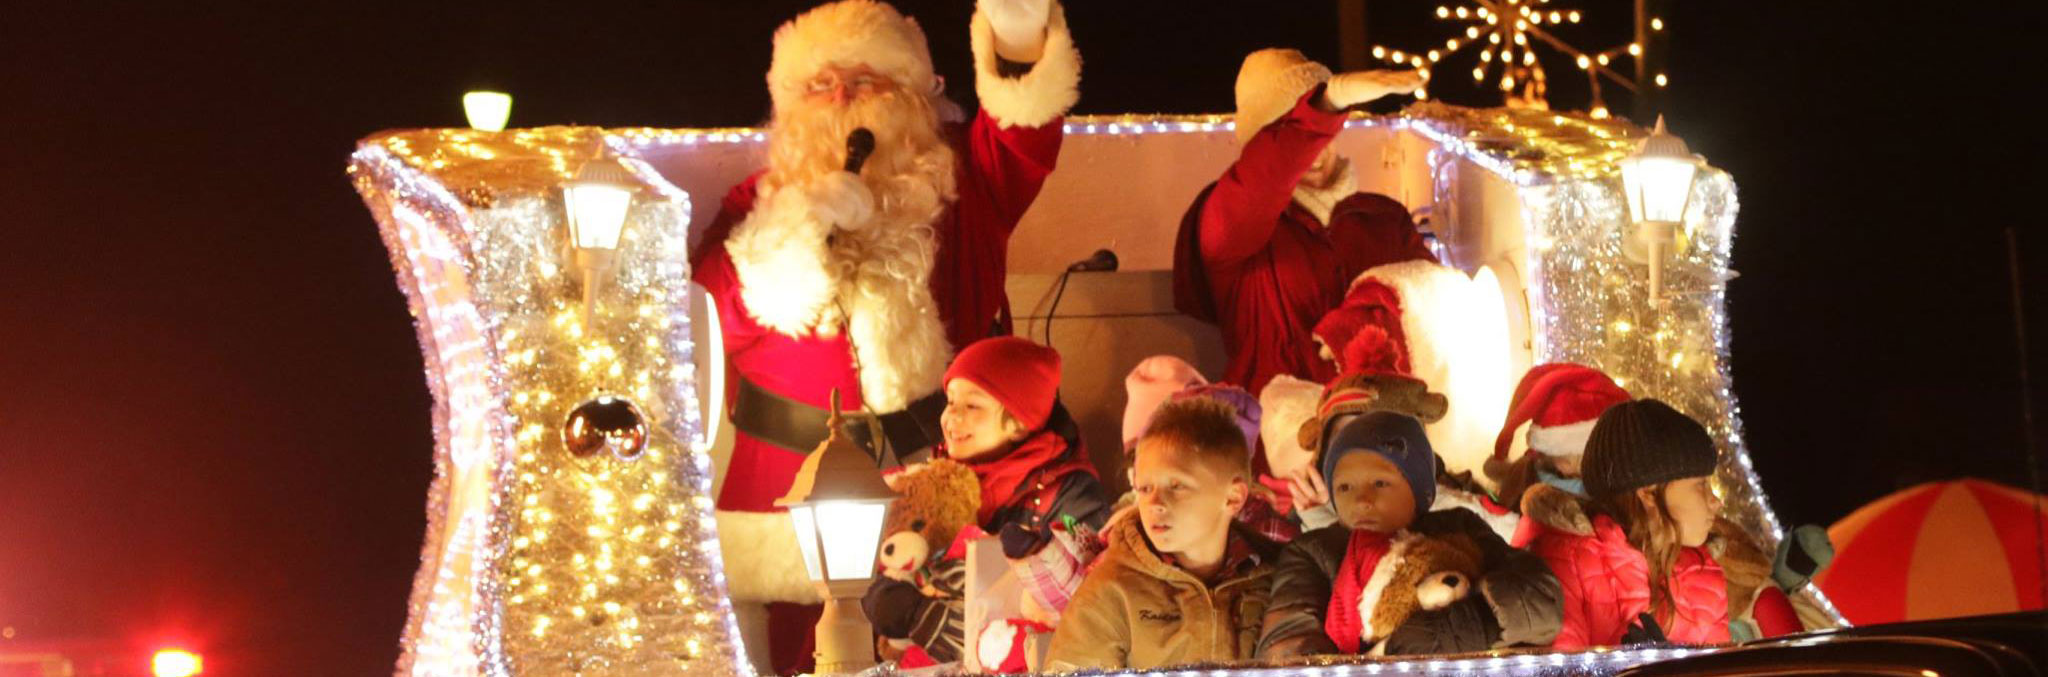 Santa with children on float